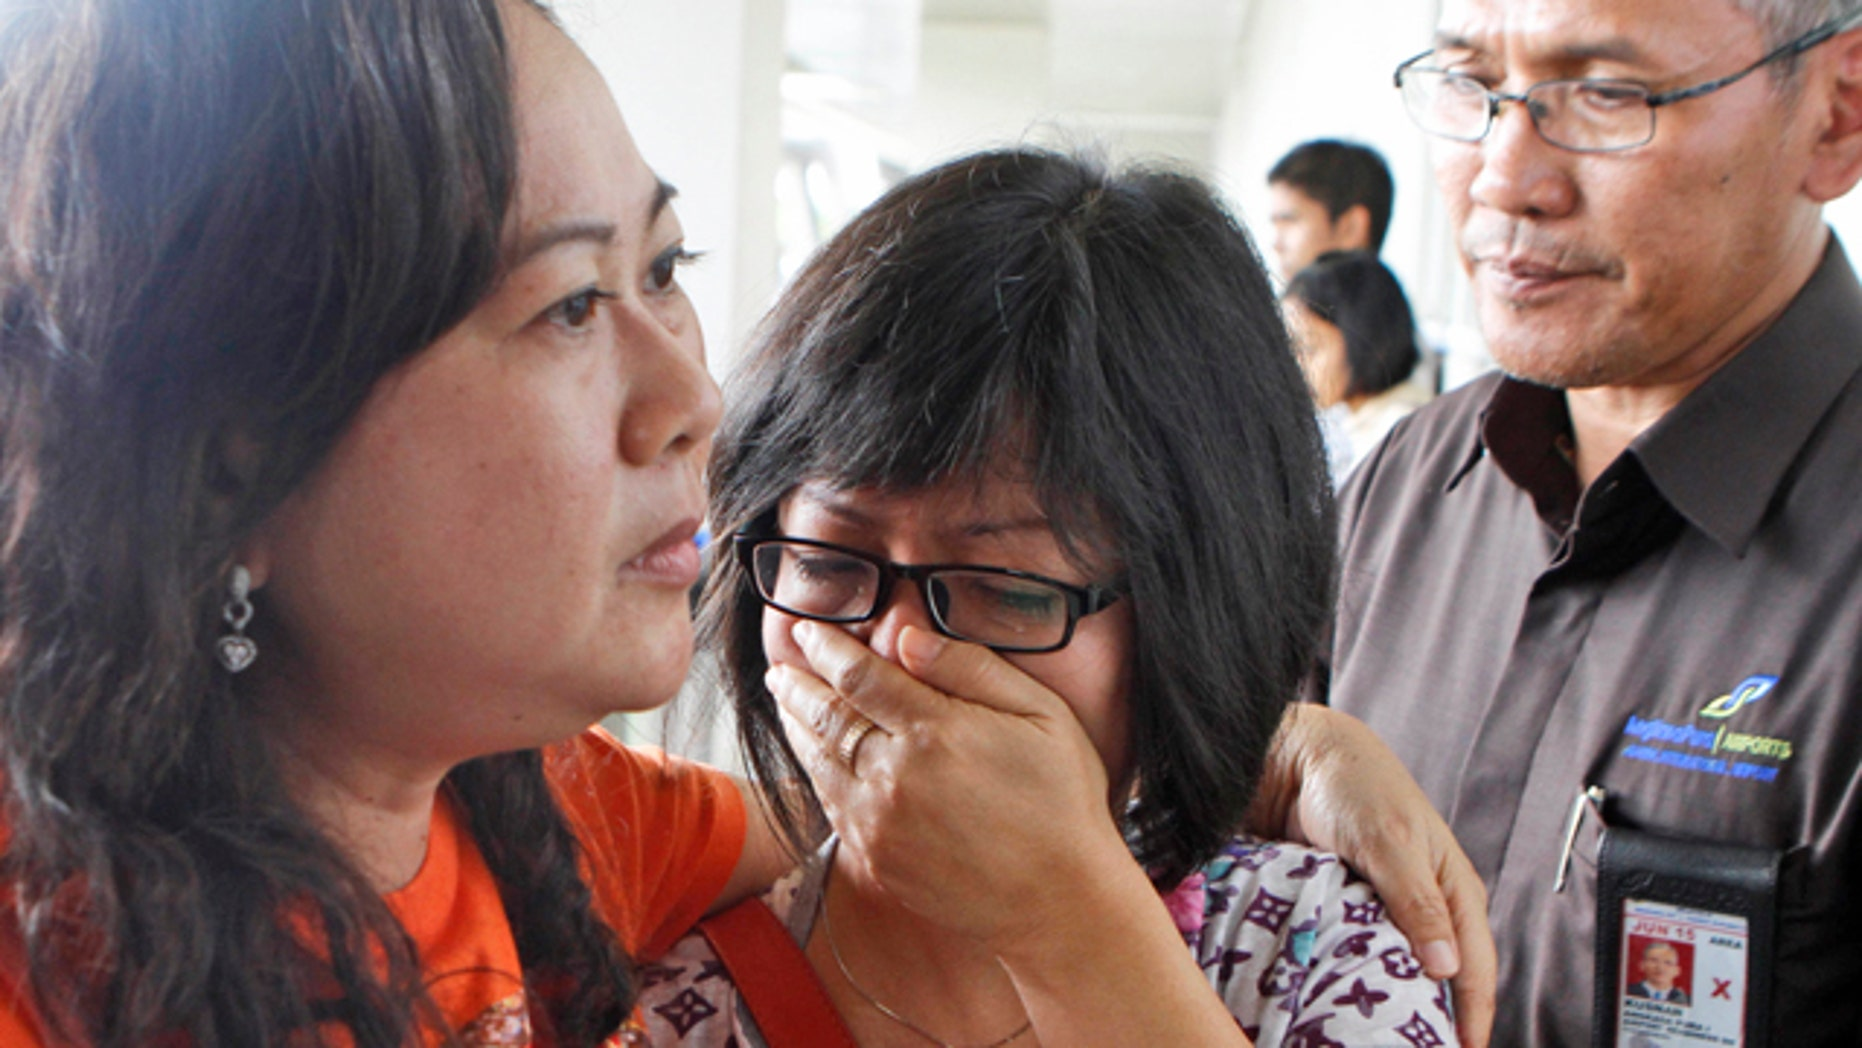 Dec. 28, 2014: A relative of AirAsia flight QZ8501 passengers weeps as she waits for the latest news on the missing jetliner at Juanda International Airport in Surabaya, East Java, Indonesia. (AP Photo/Trisnadi)